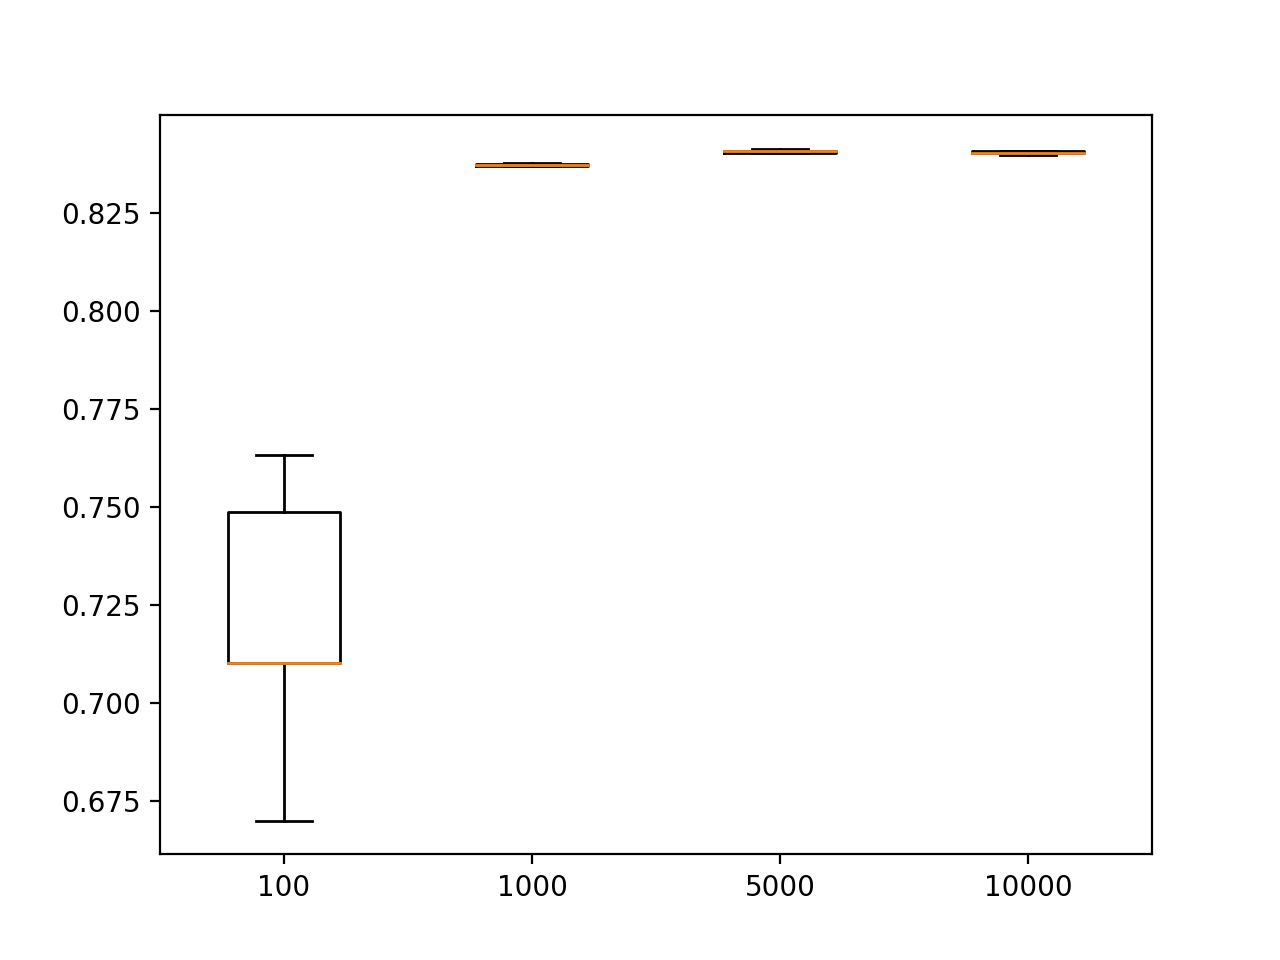 Box and Whisker Plots of Test Set Accuracy of MLPs Trained With Different Sized Training Sets on the Circles Problem